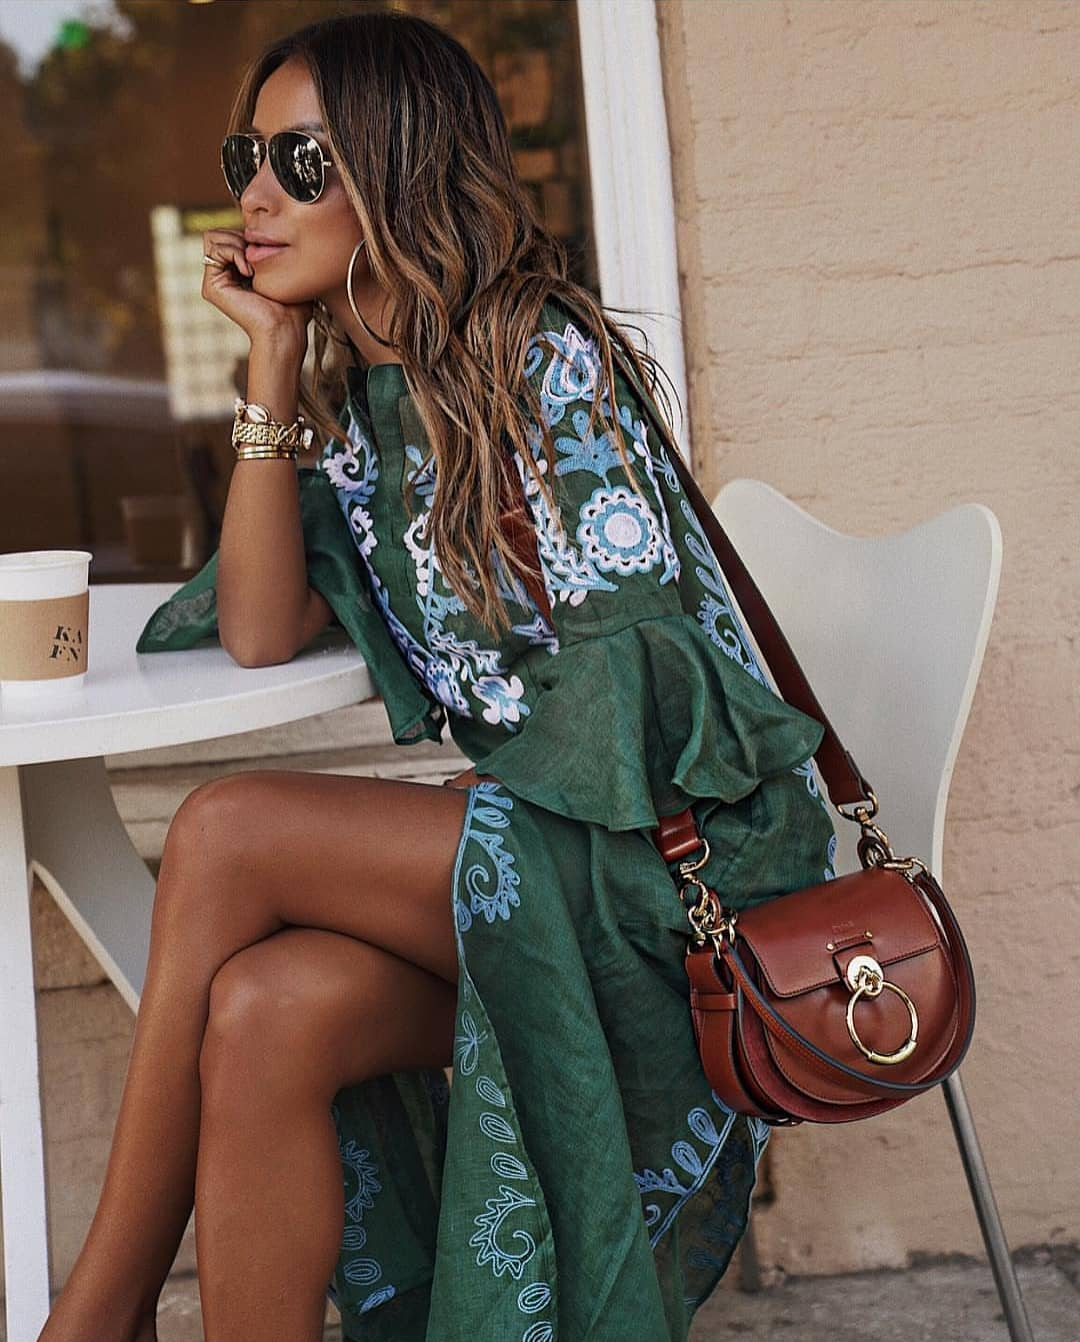 Bohemian Maxi Dress In Green With Embroideries For Summer Vacation 2019